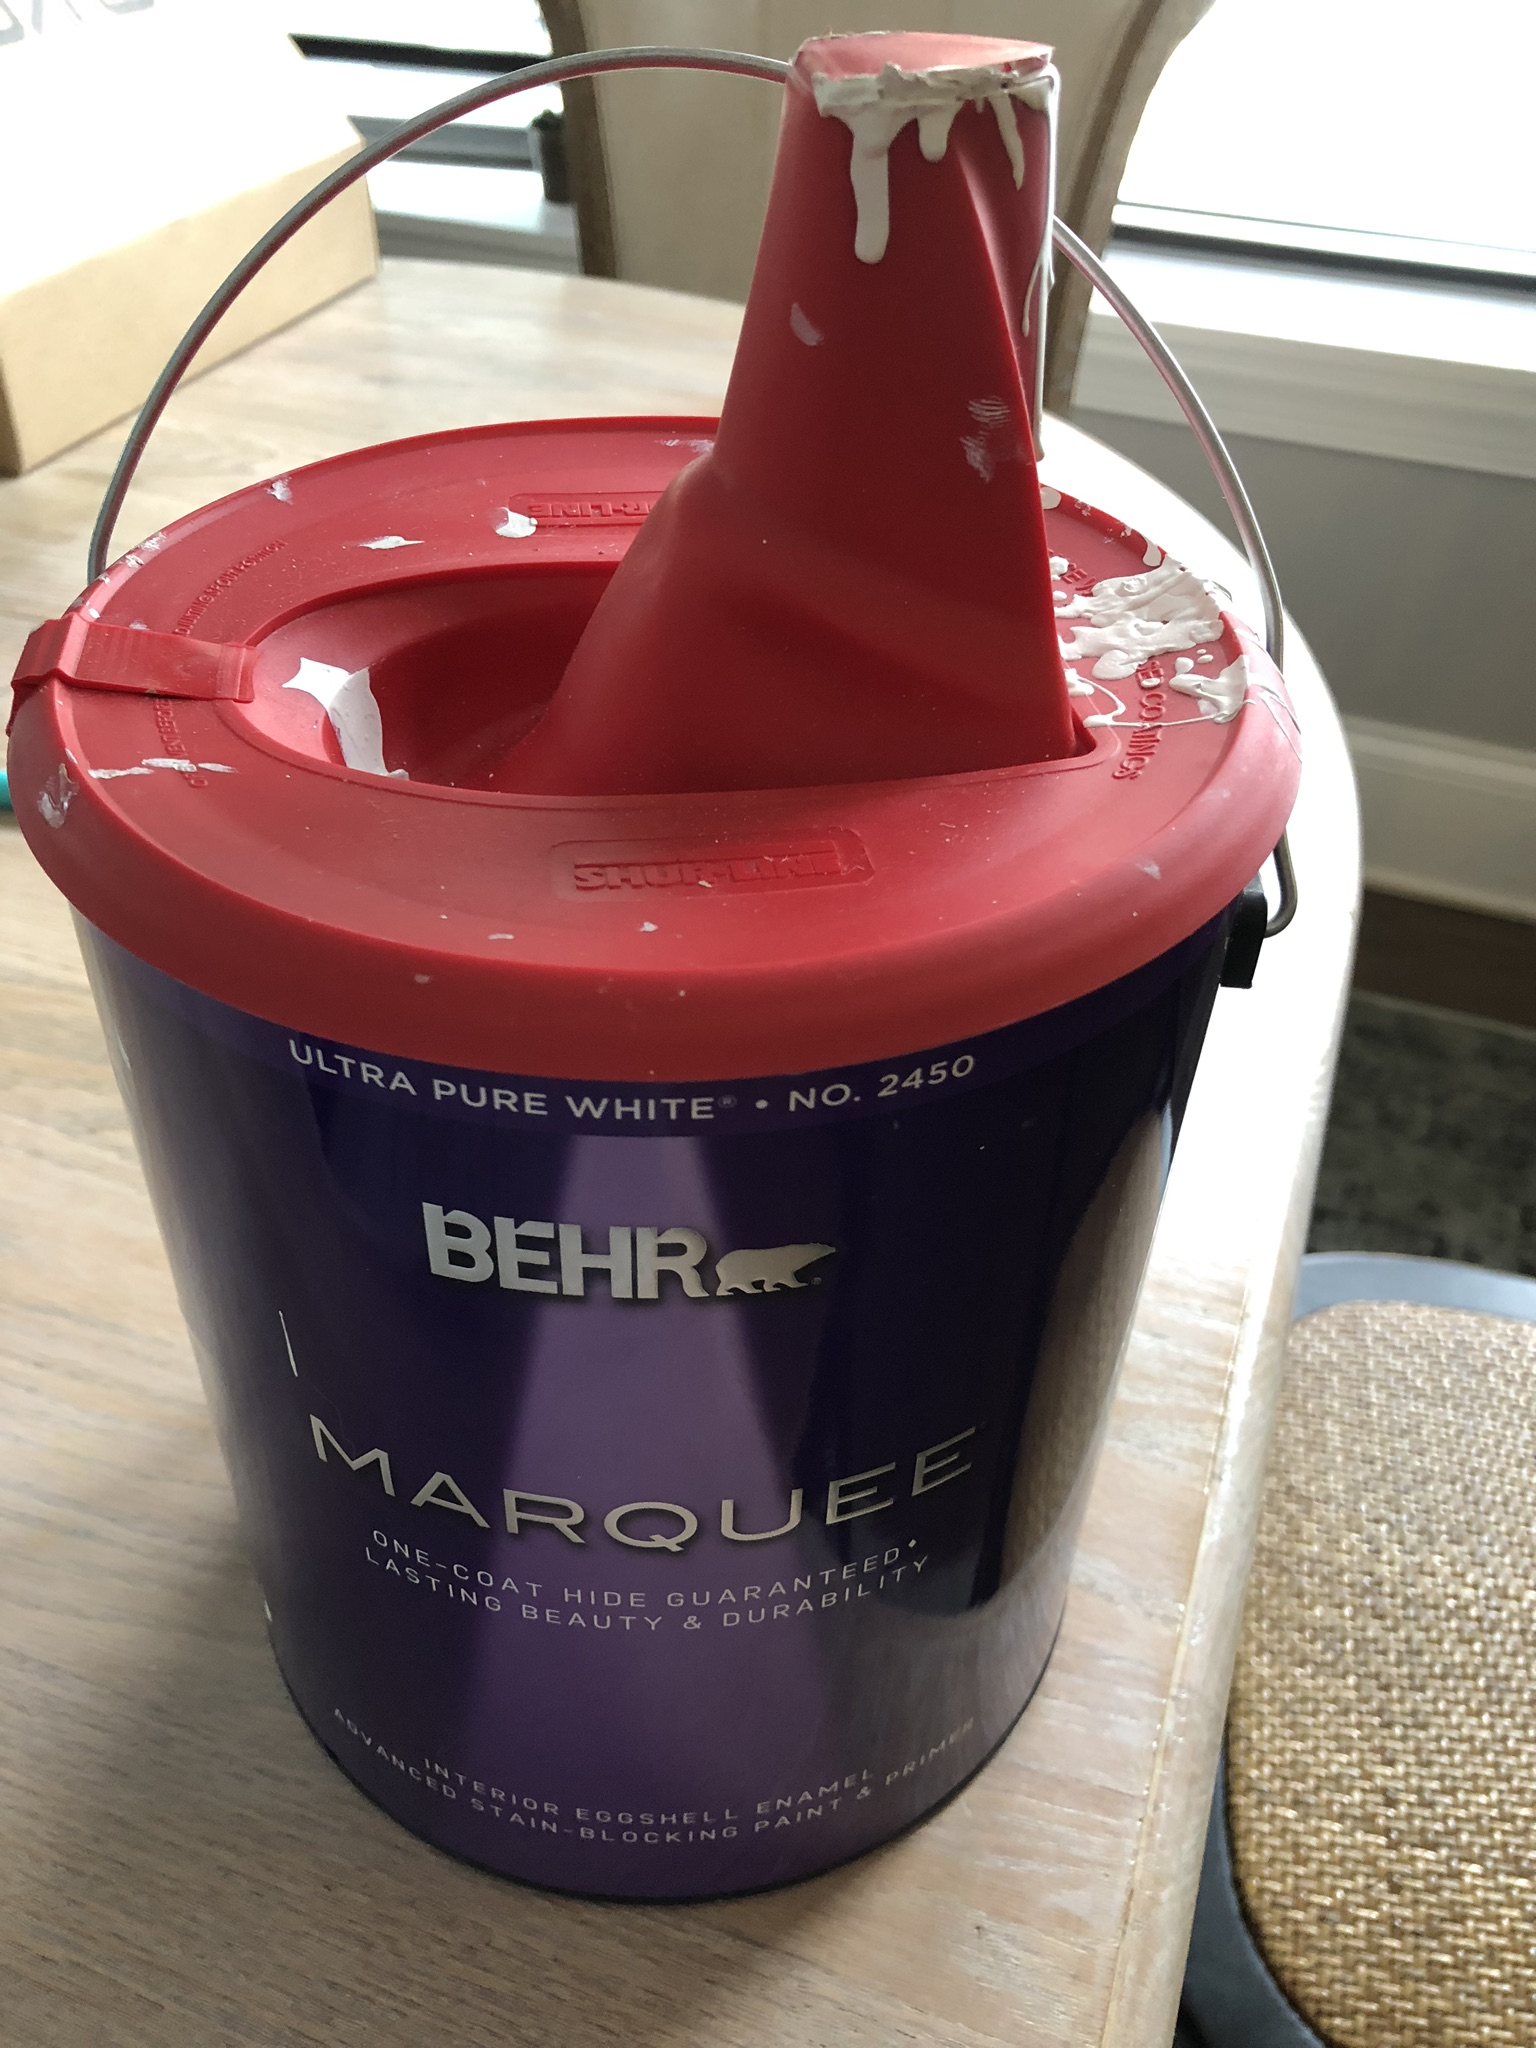 We used Behr Marquee Ultra Pure White paint color on our bathroom walls & in our nursery.